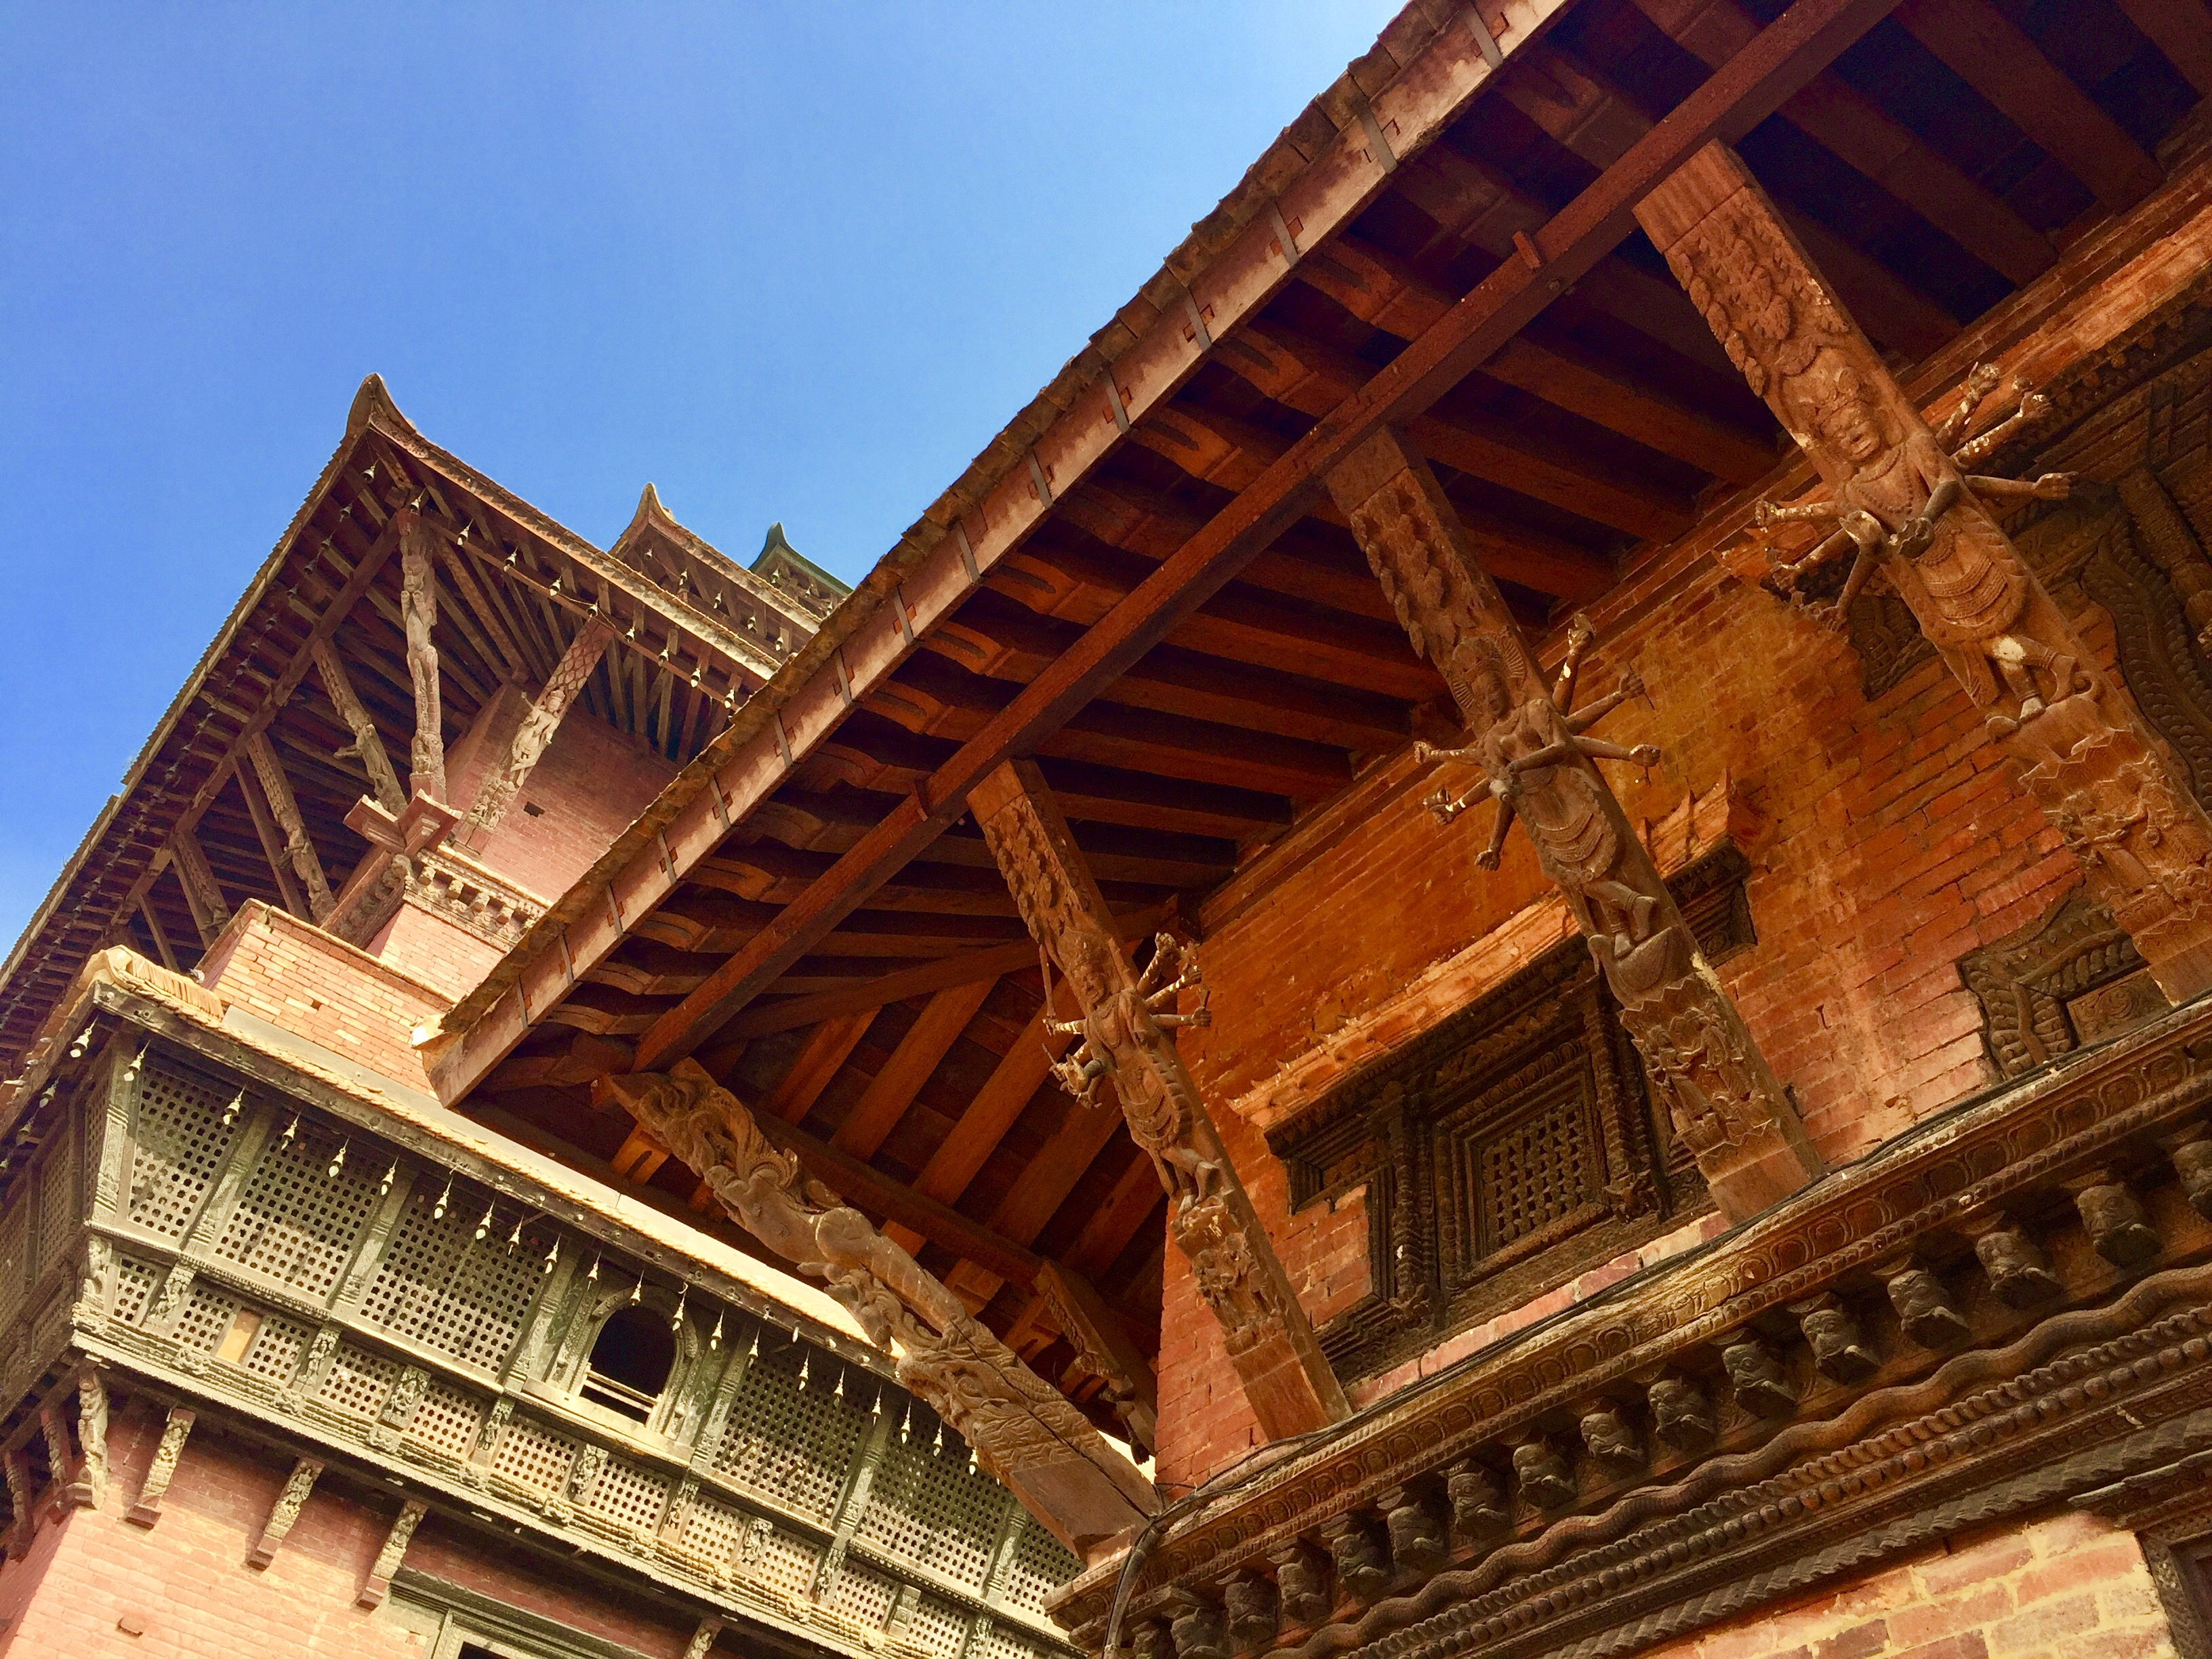 Adventures in Kathmandu and arriving in Dhangadhi!